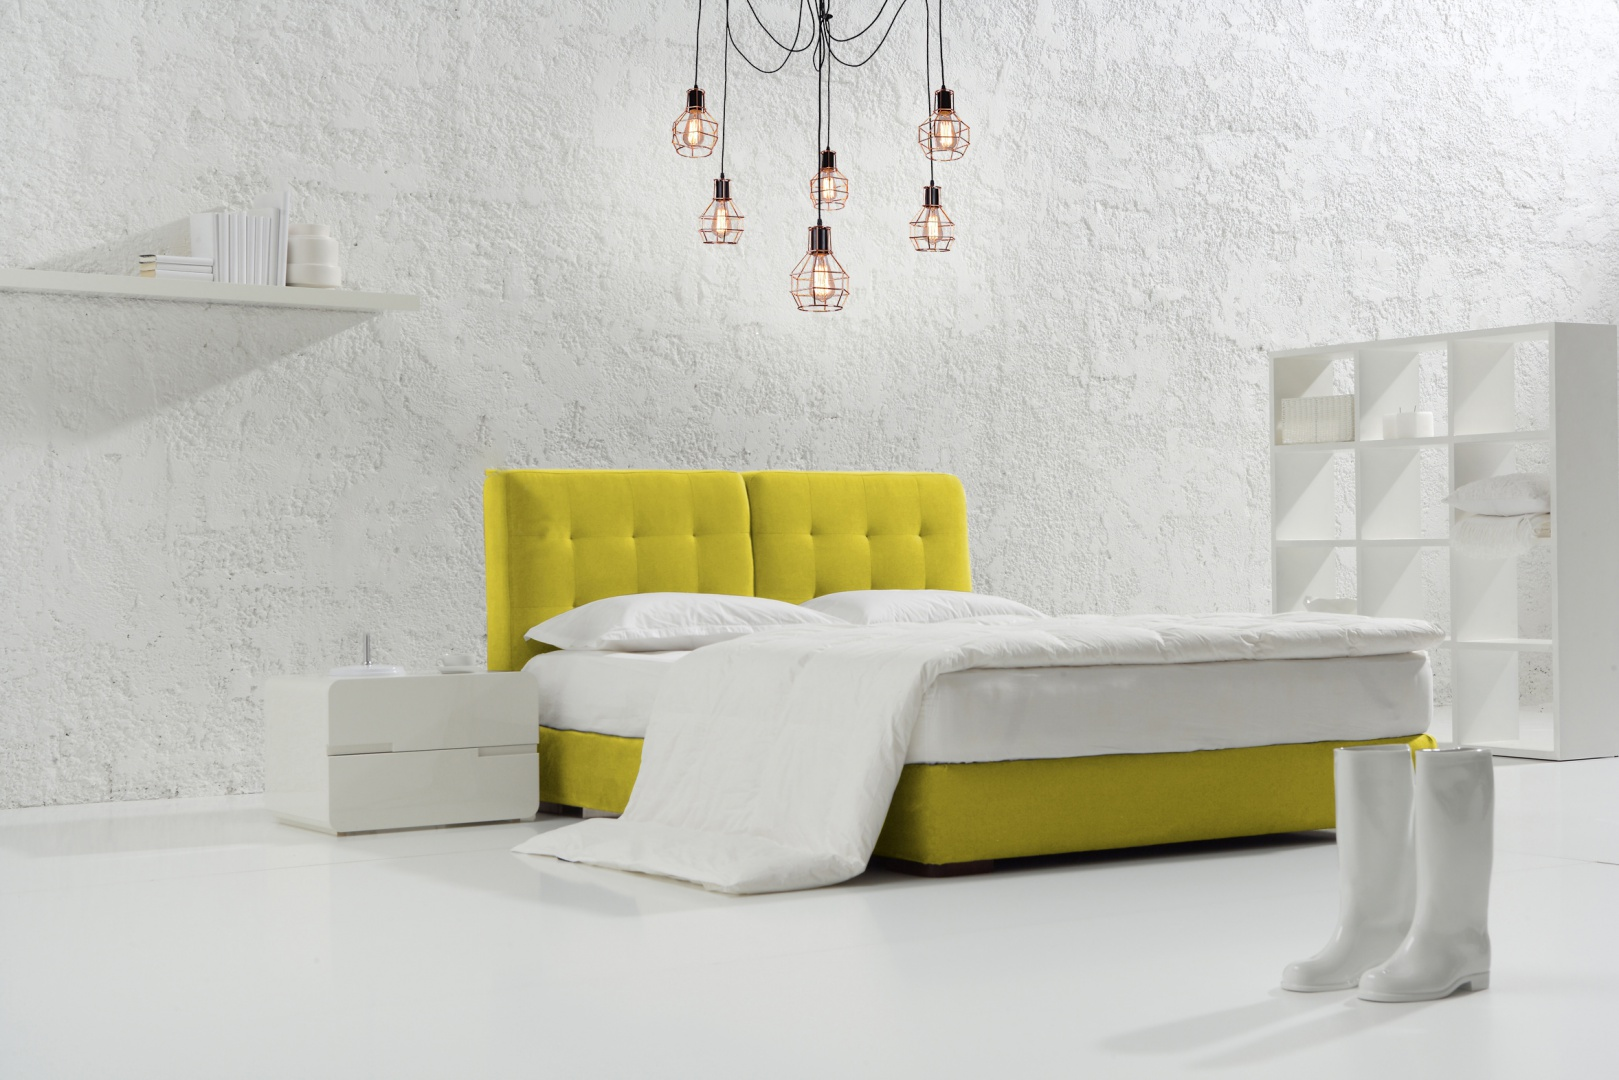 Lampa Verin Candellux Lighting.